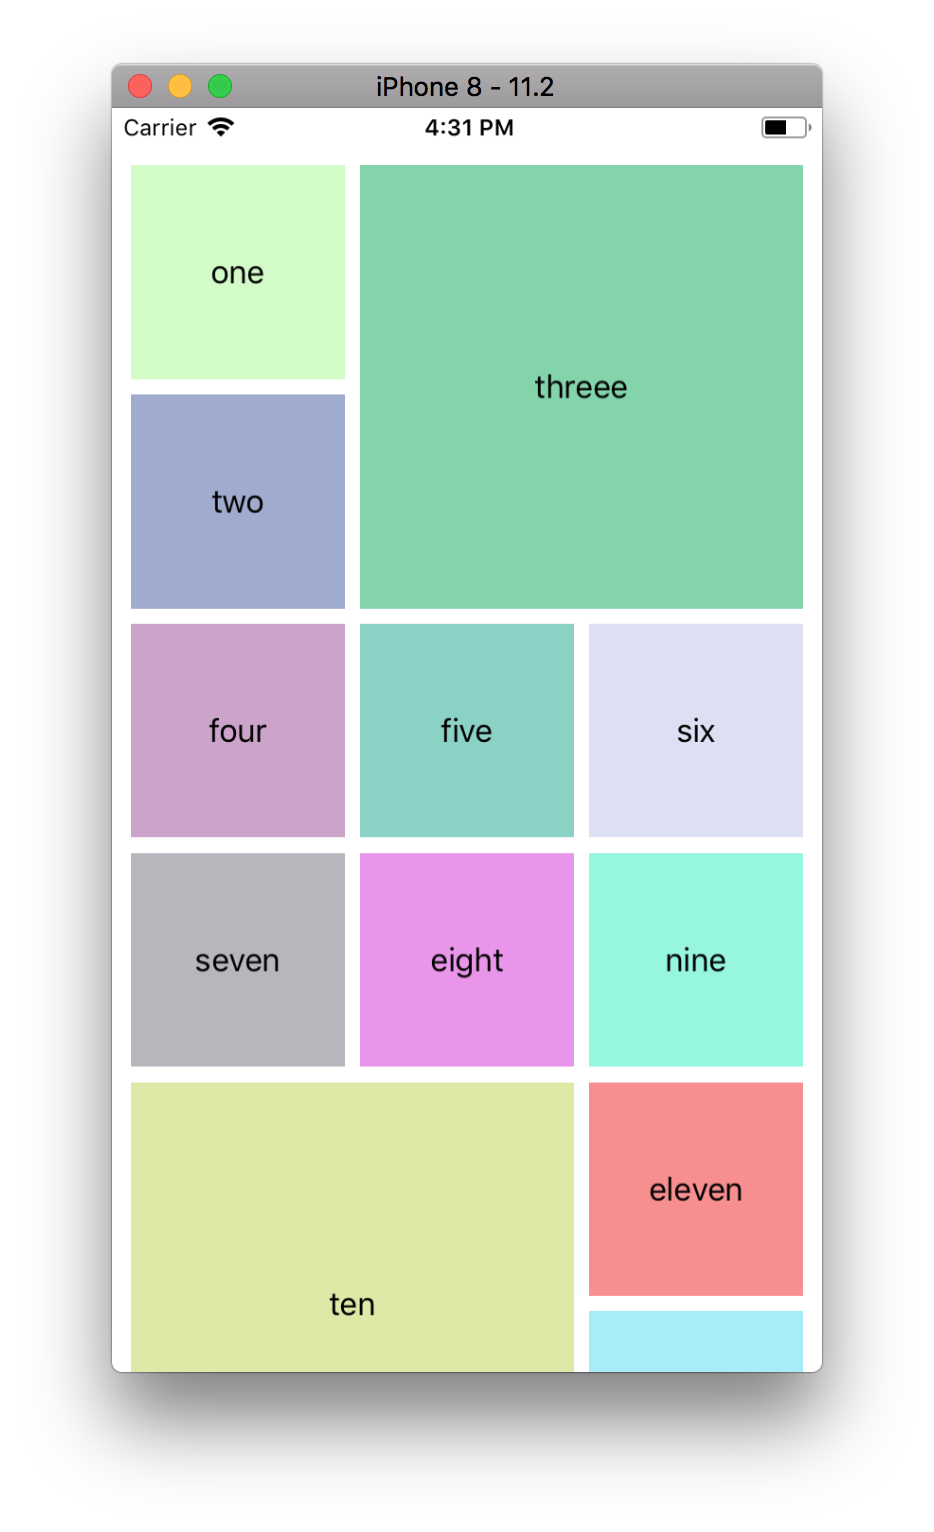 collection-view-layouts